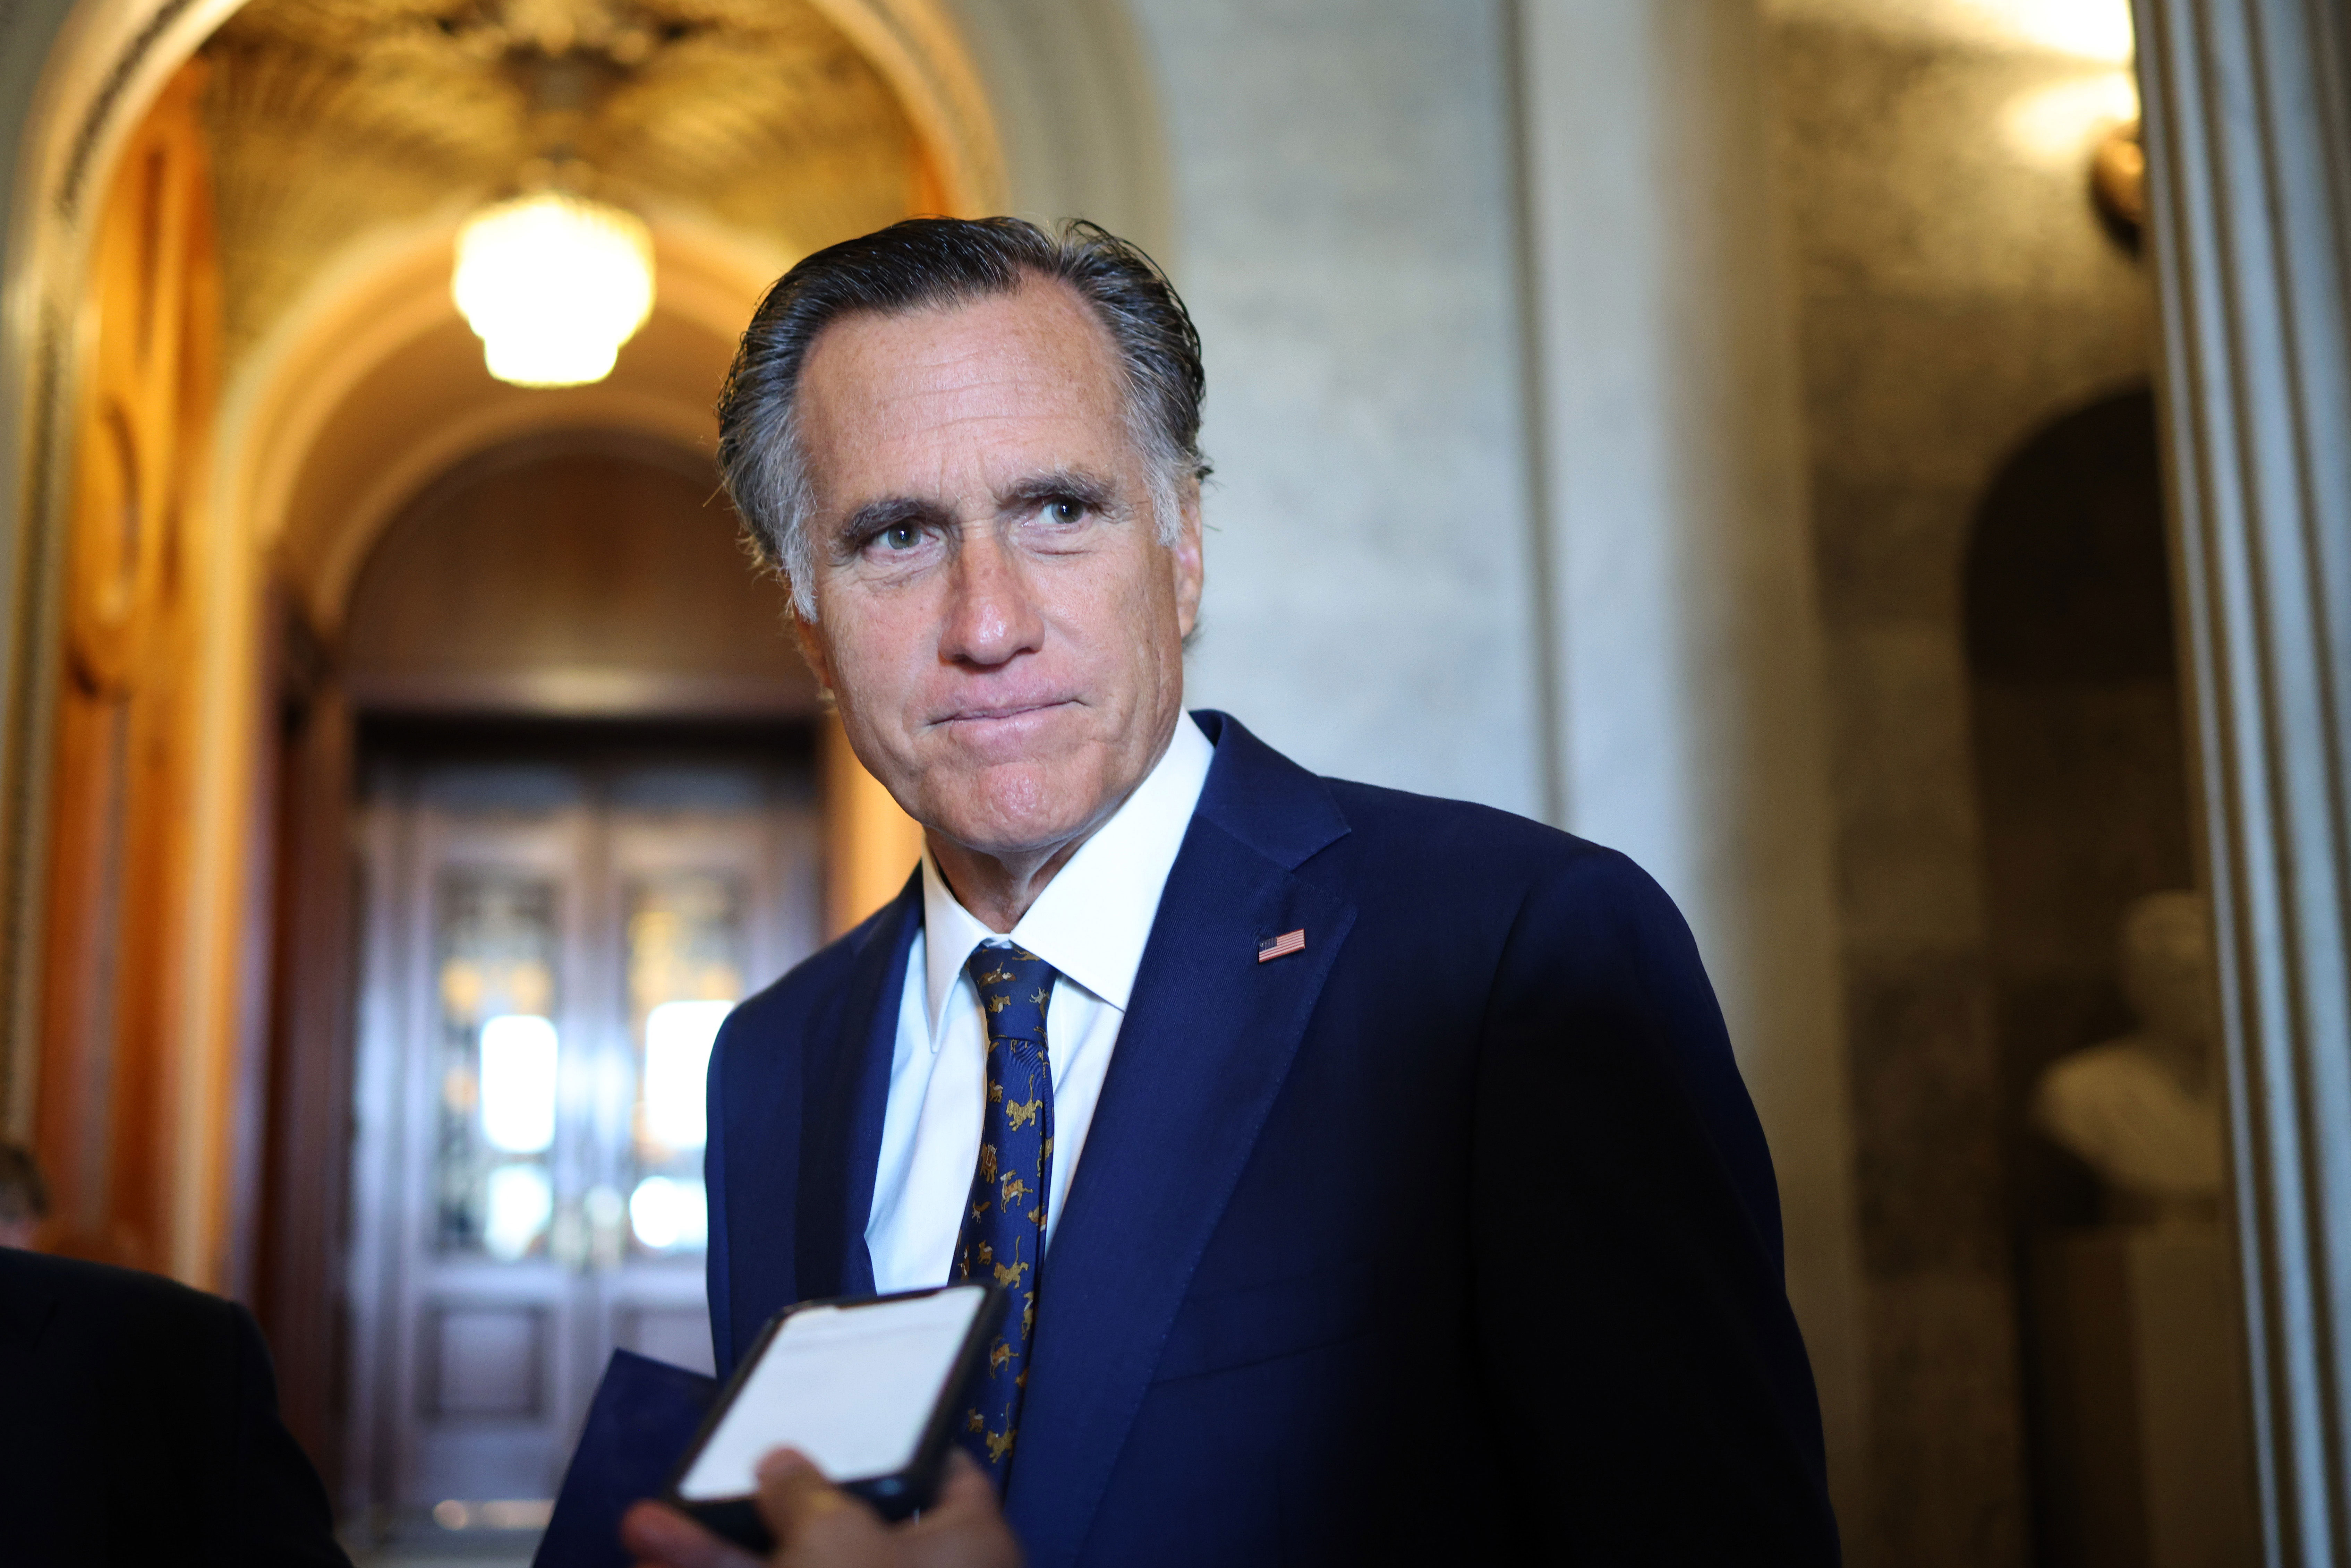 Sen. Mitt Romney speaks to reporters at the Capitol in Washington, DC, on July 21, 2021.